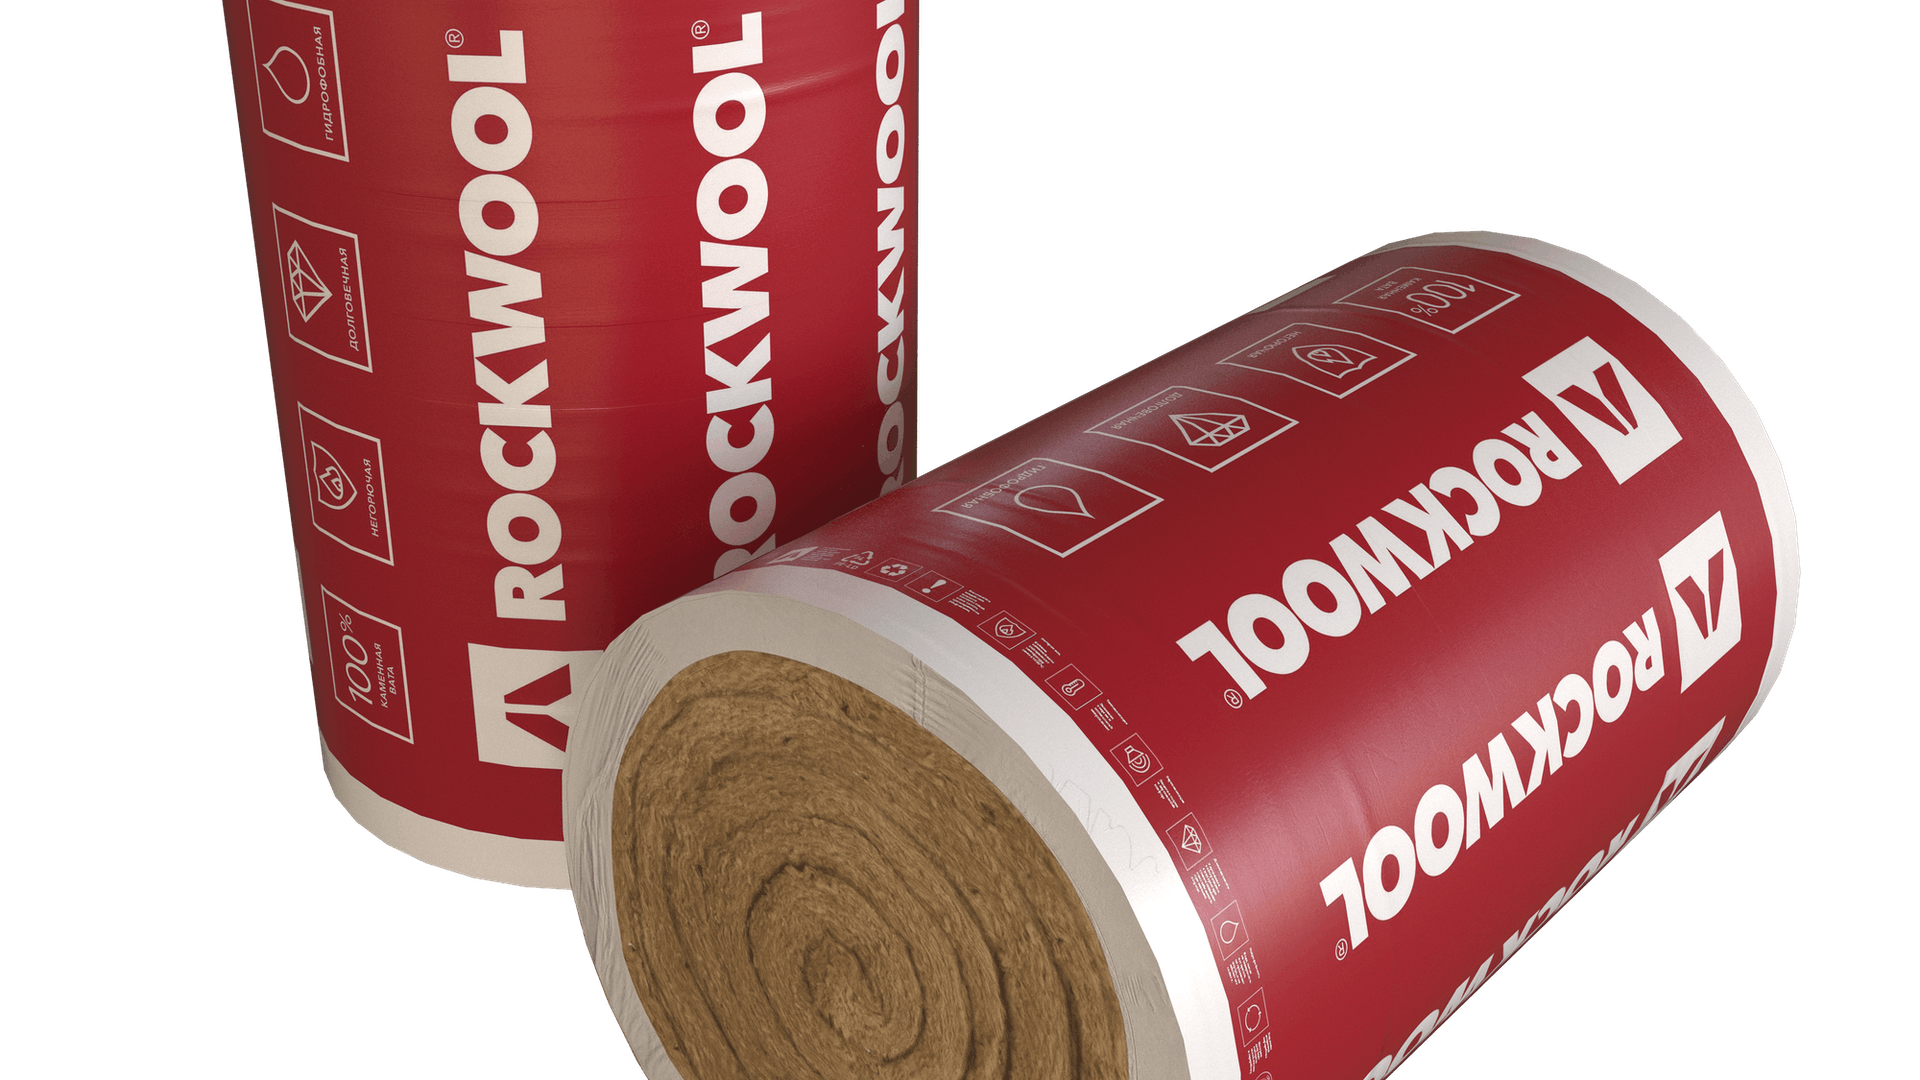 Package, Product, ROCKFIRE, Fire protection, Roll, Alu1 wired mat 105